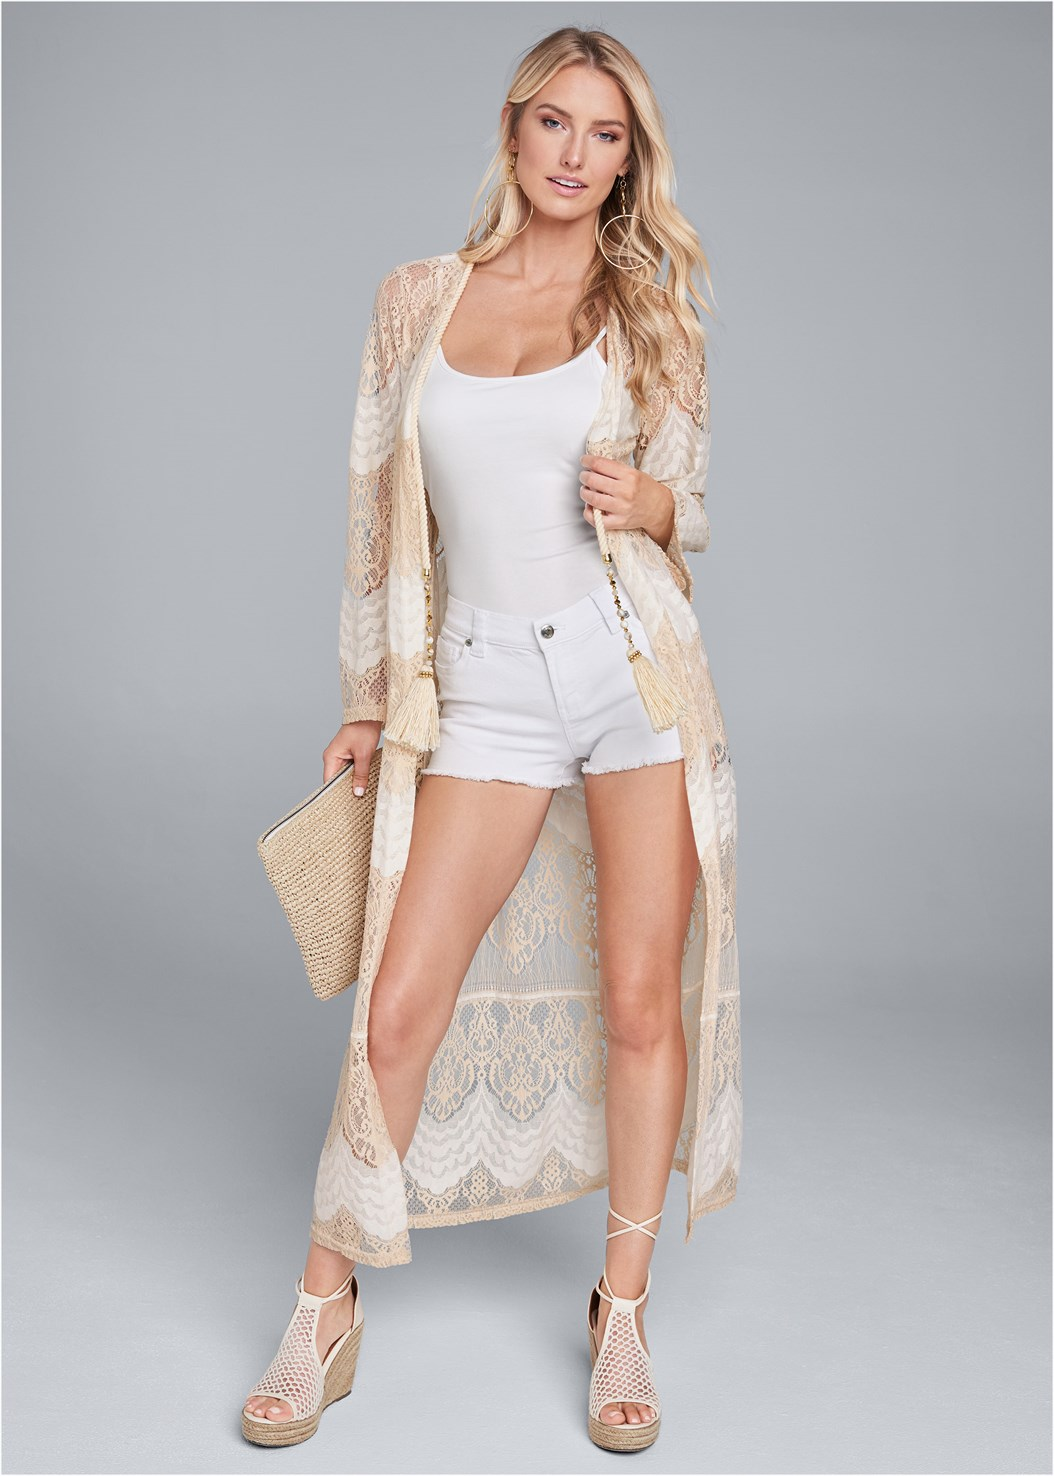 Long Lace Topper,Basic Cami Two Pack,Frayed Cut Off Jean Shorts,Embellished Wedges,Leaf Earring Set,Long Chain Pendant Necklace,Embellished Tassel Clutch,Pleated Tote Bag